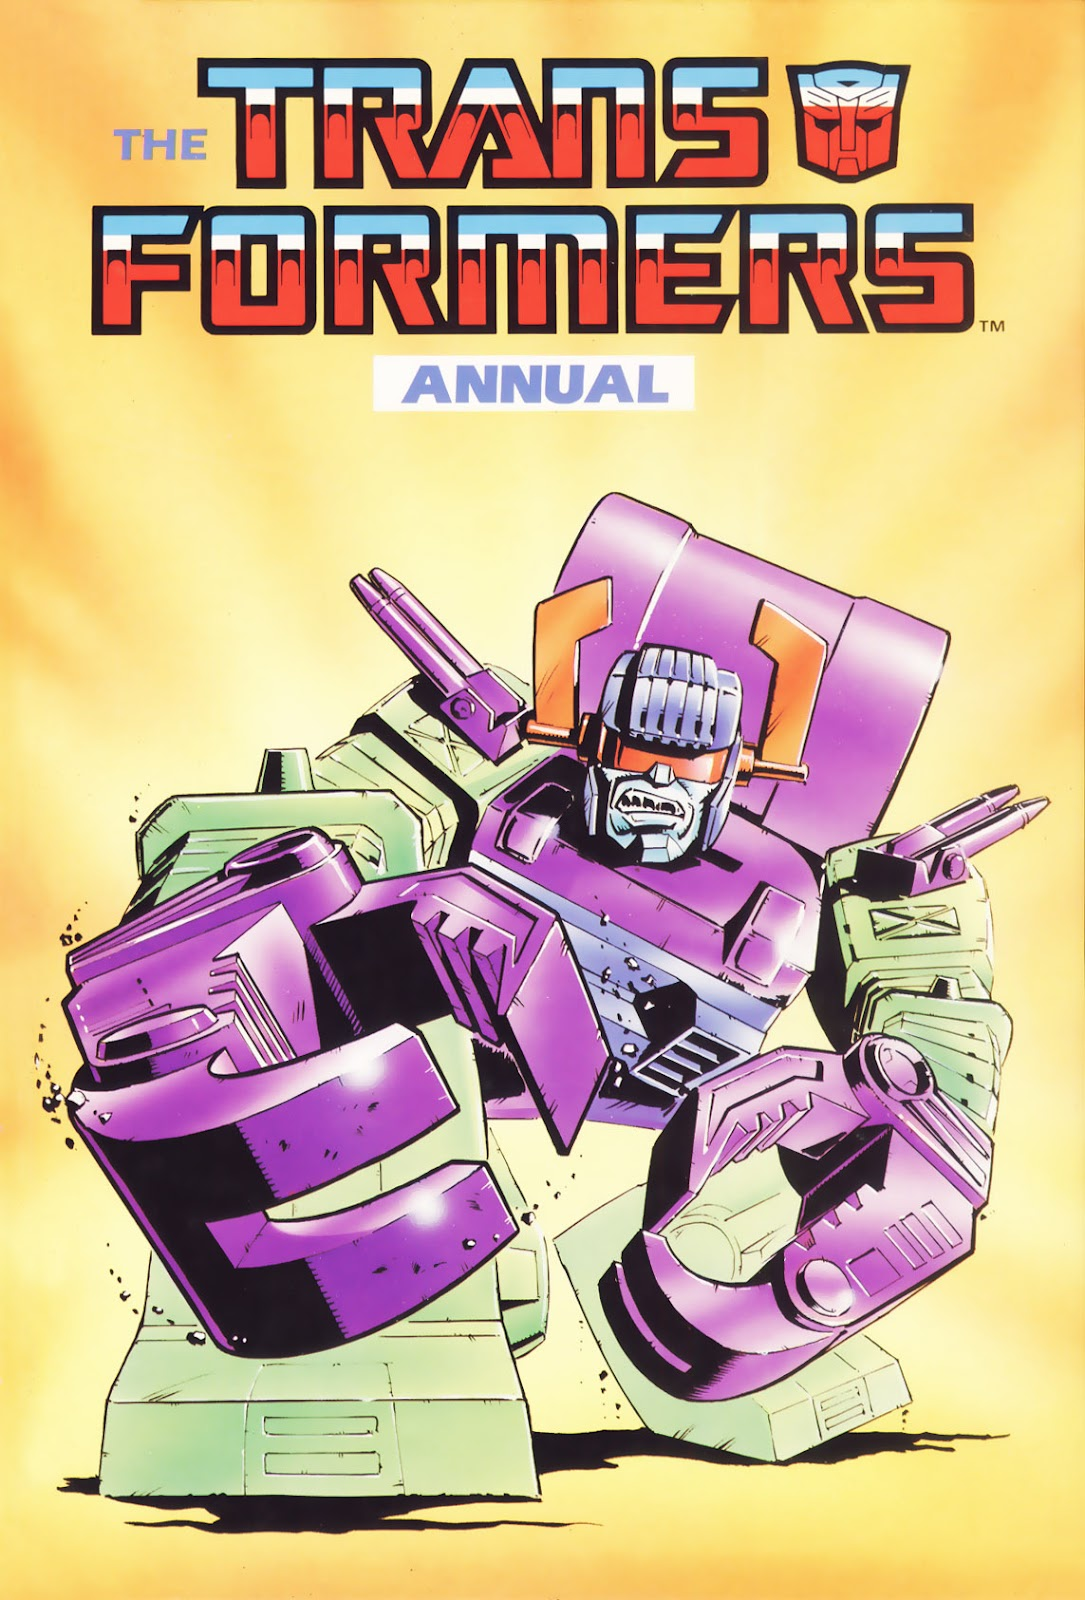 The Transformers Annual 1988 Page 1